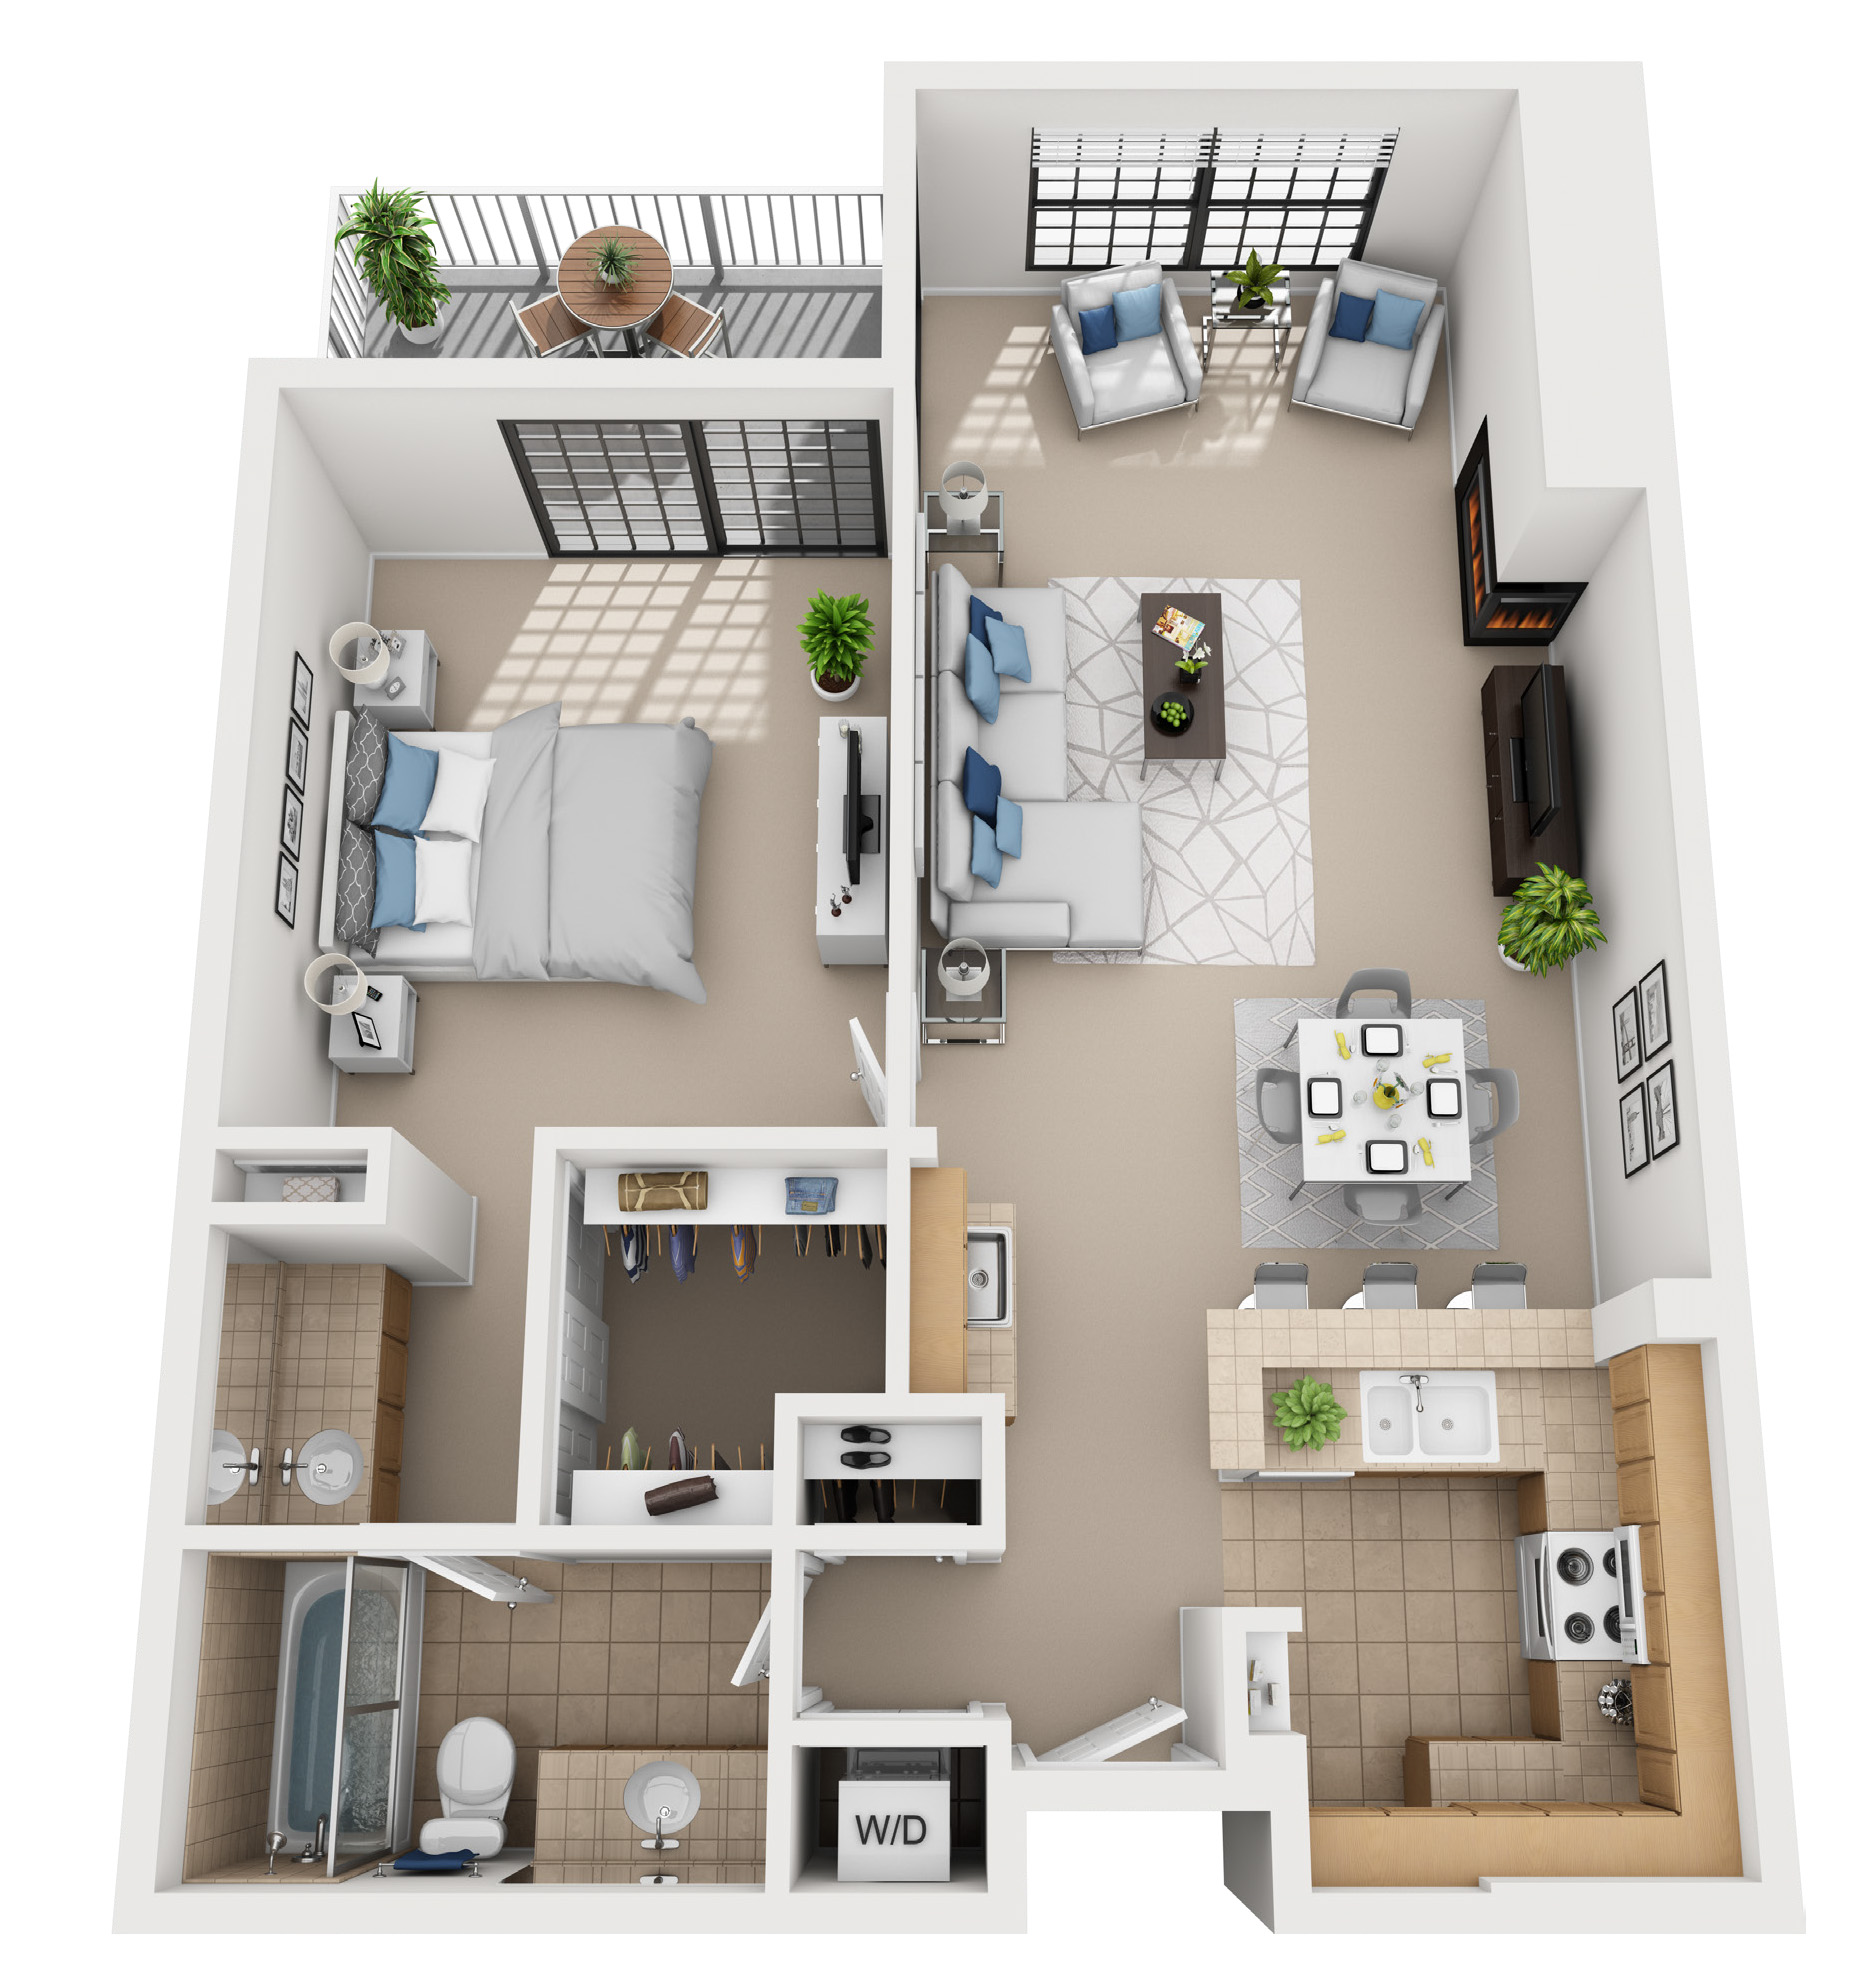 1 bedroom floor plan at 555 Barrington